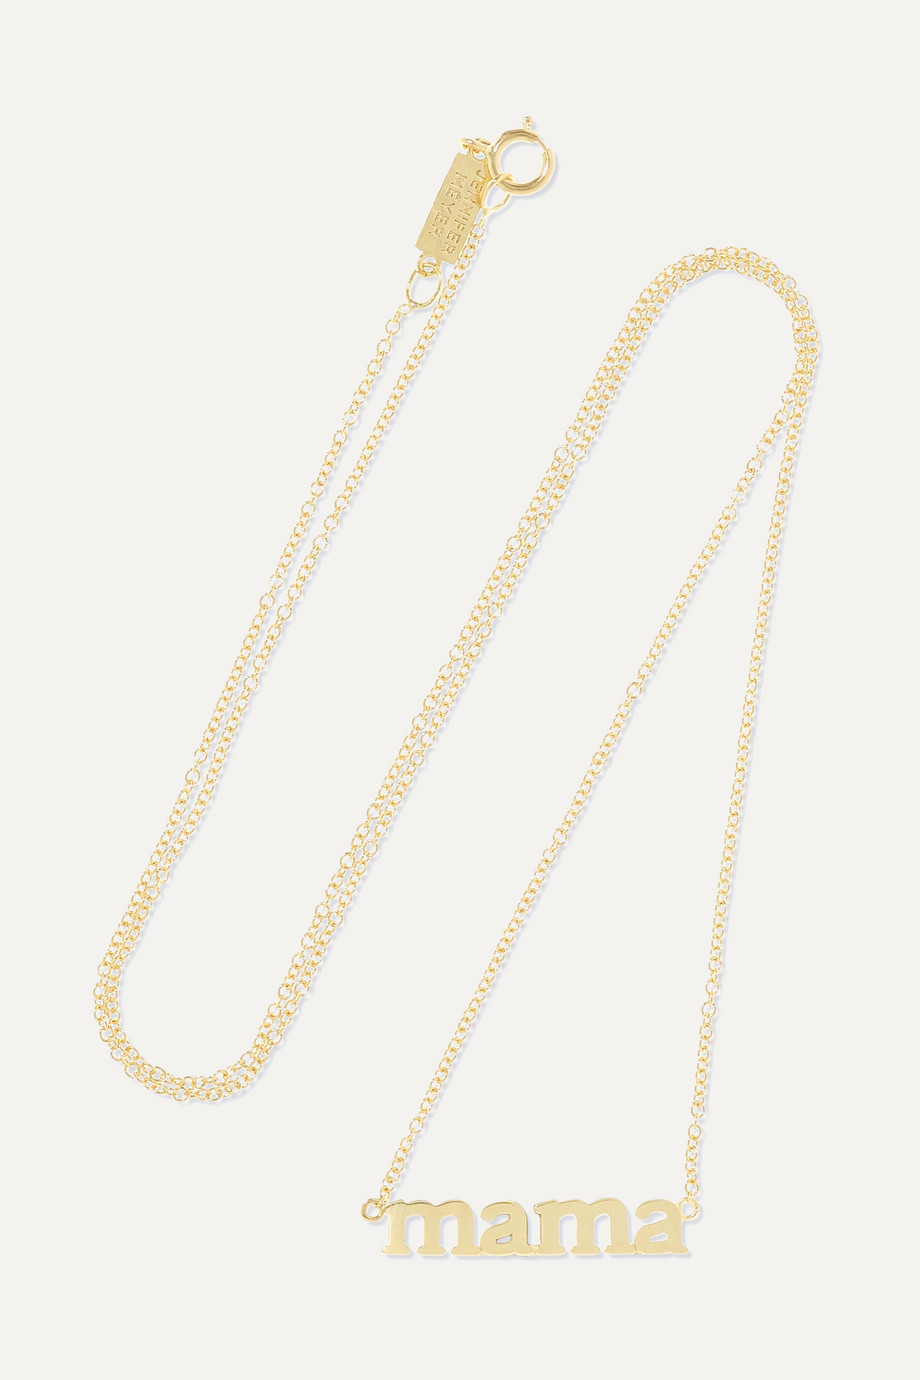 JENNIFER MEYER Mama 18-karat gold necklace